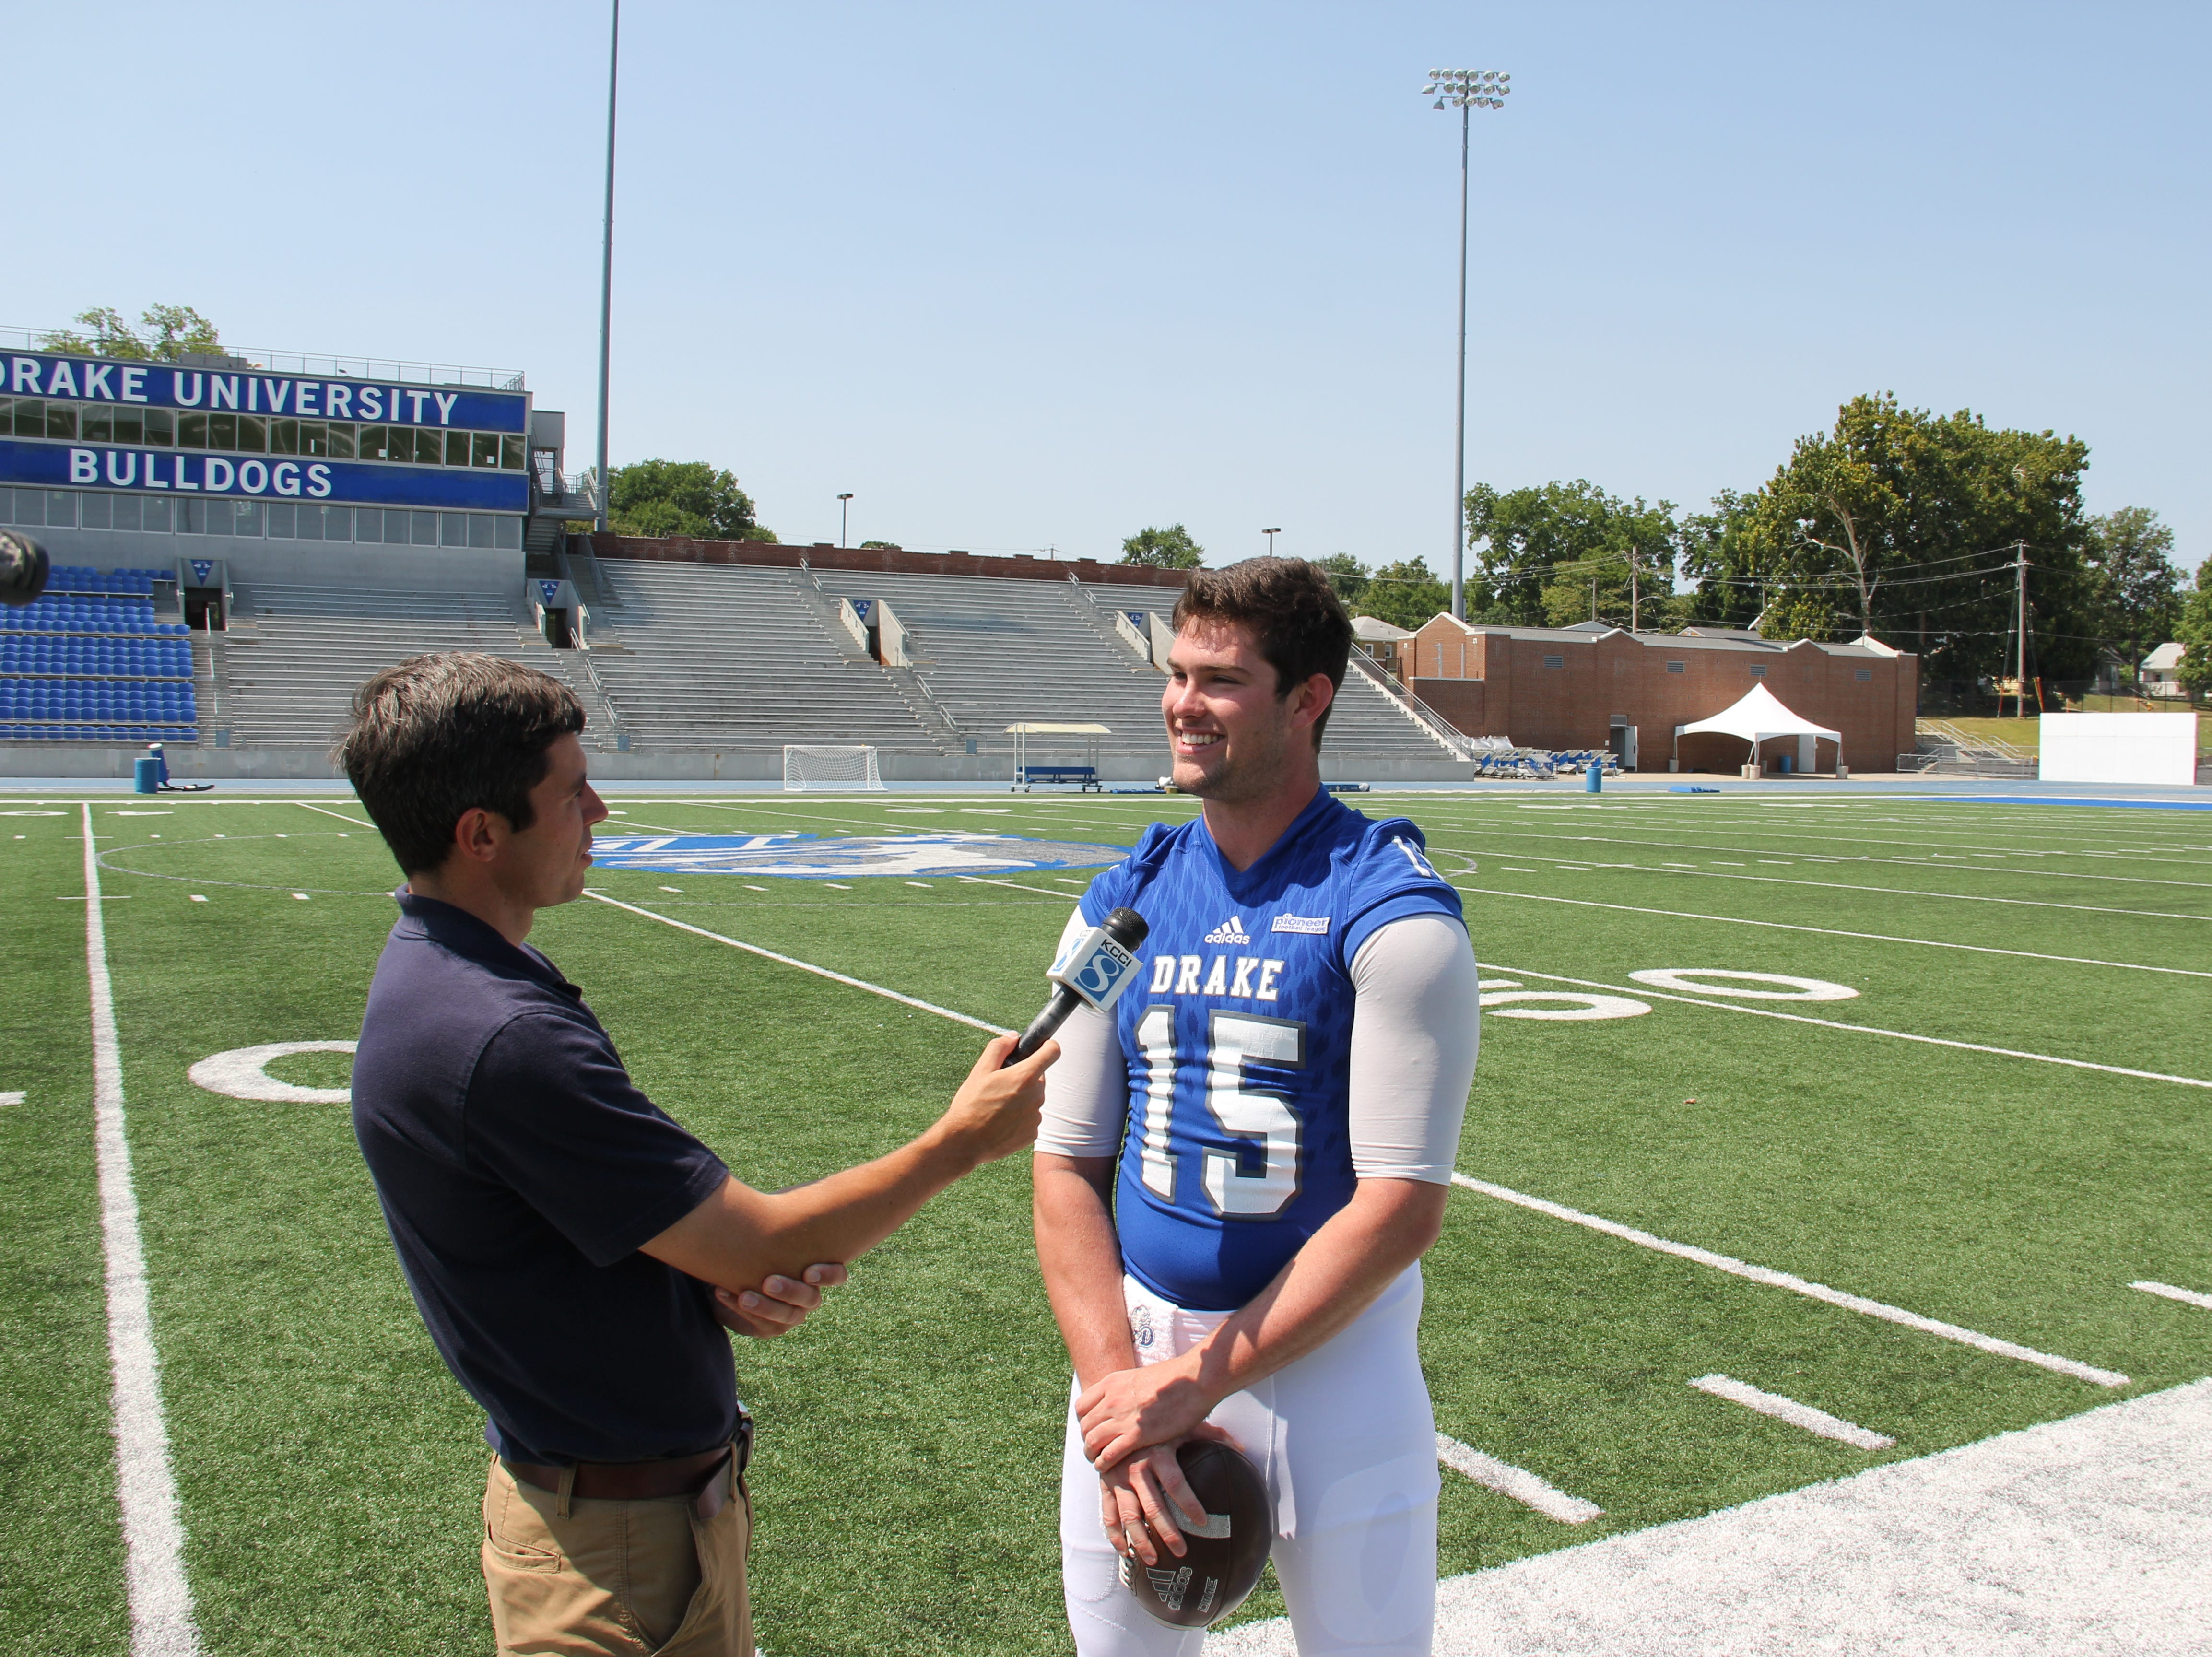 Starting quarterback Grant Kraemer returns for his senior season at Drake after throwing for 20 touchdowns in 2017.